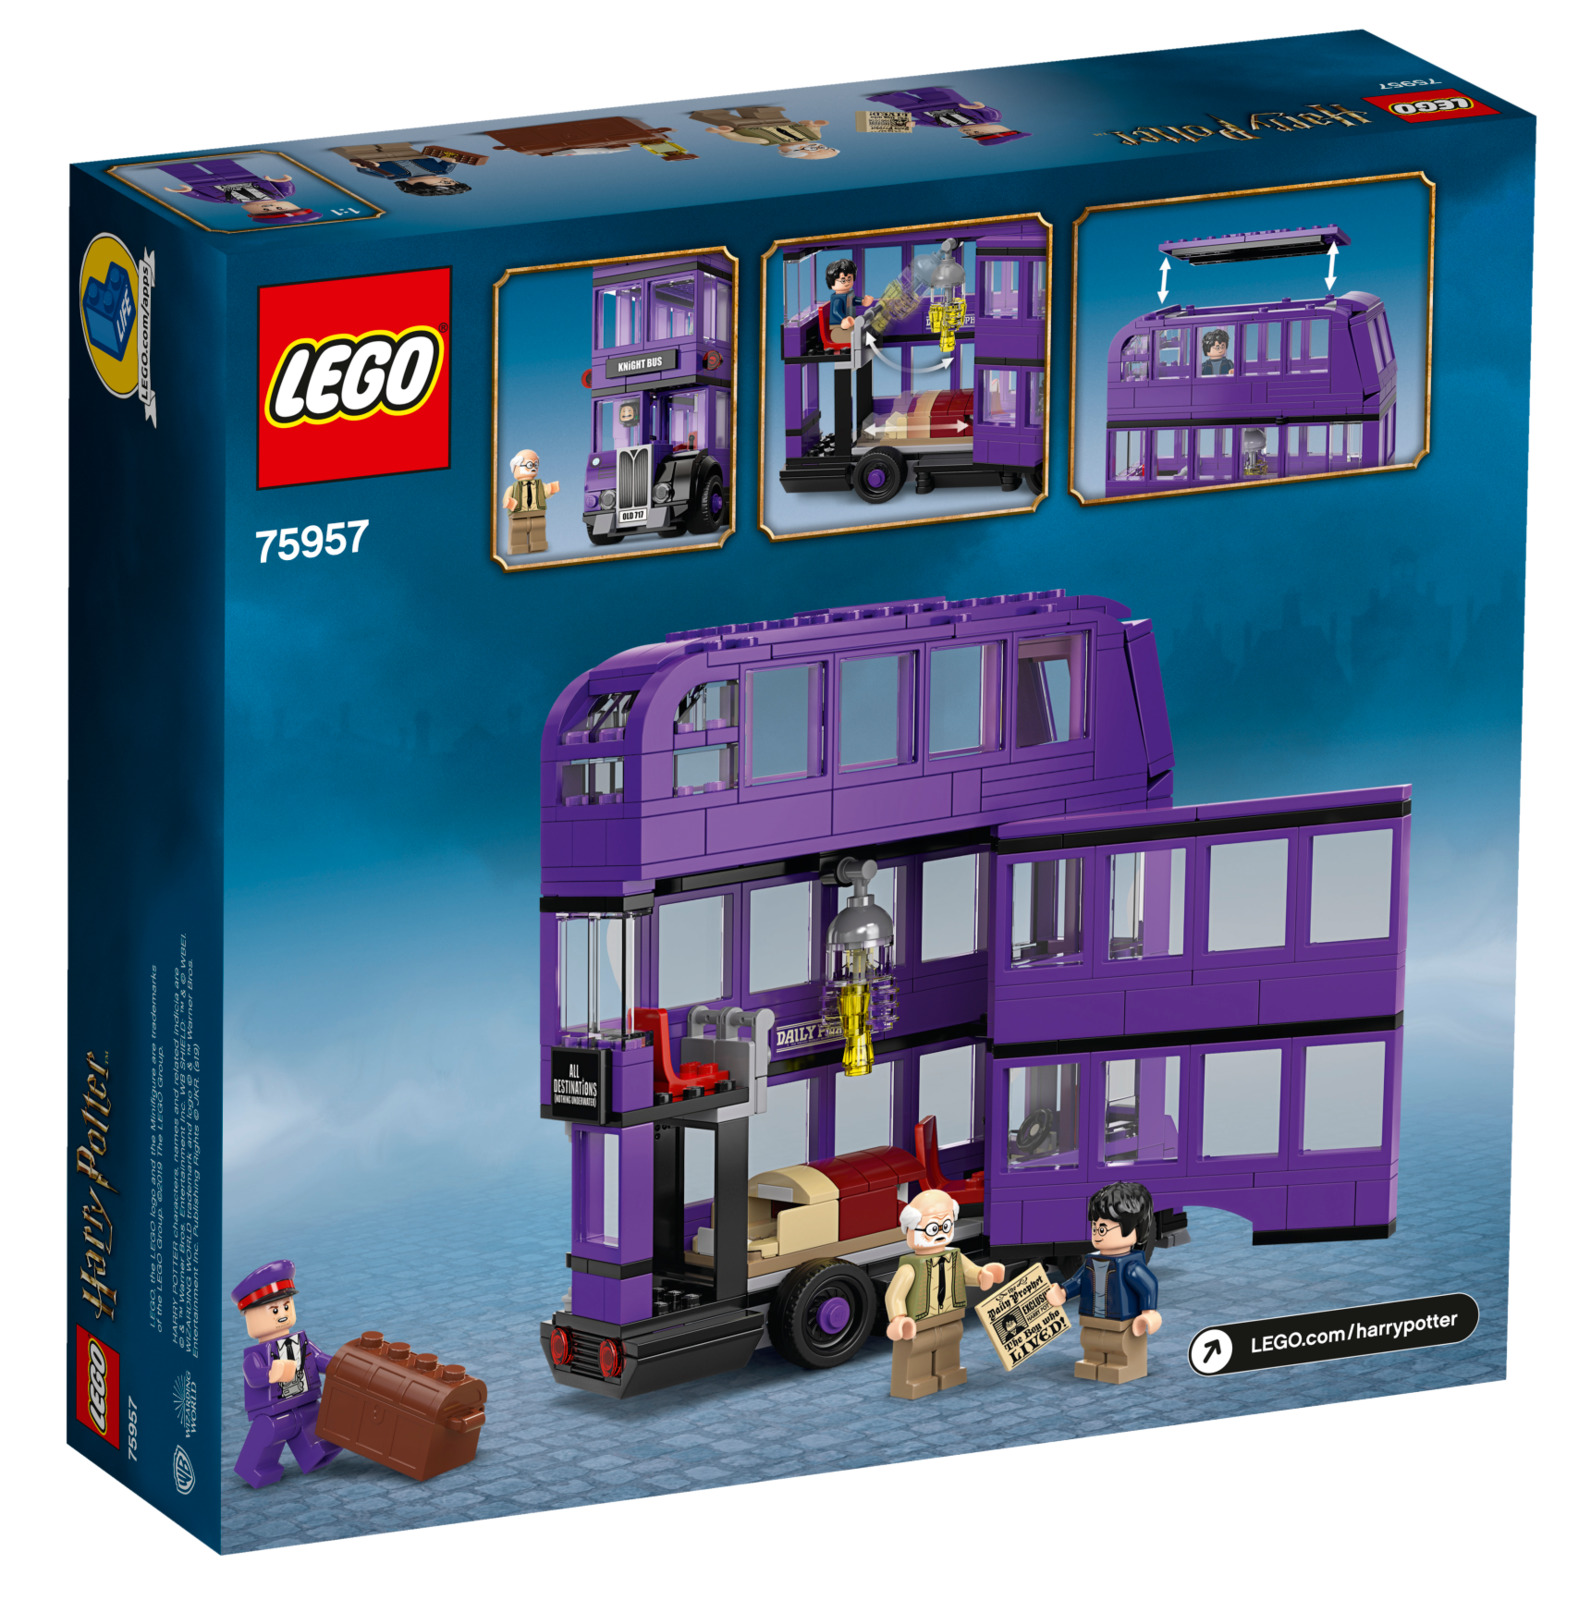 LEGO Harry Potter - The Knight Bus (75957) image